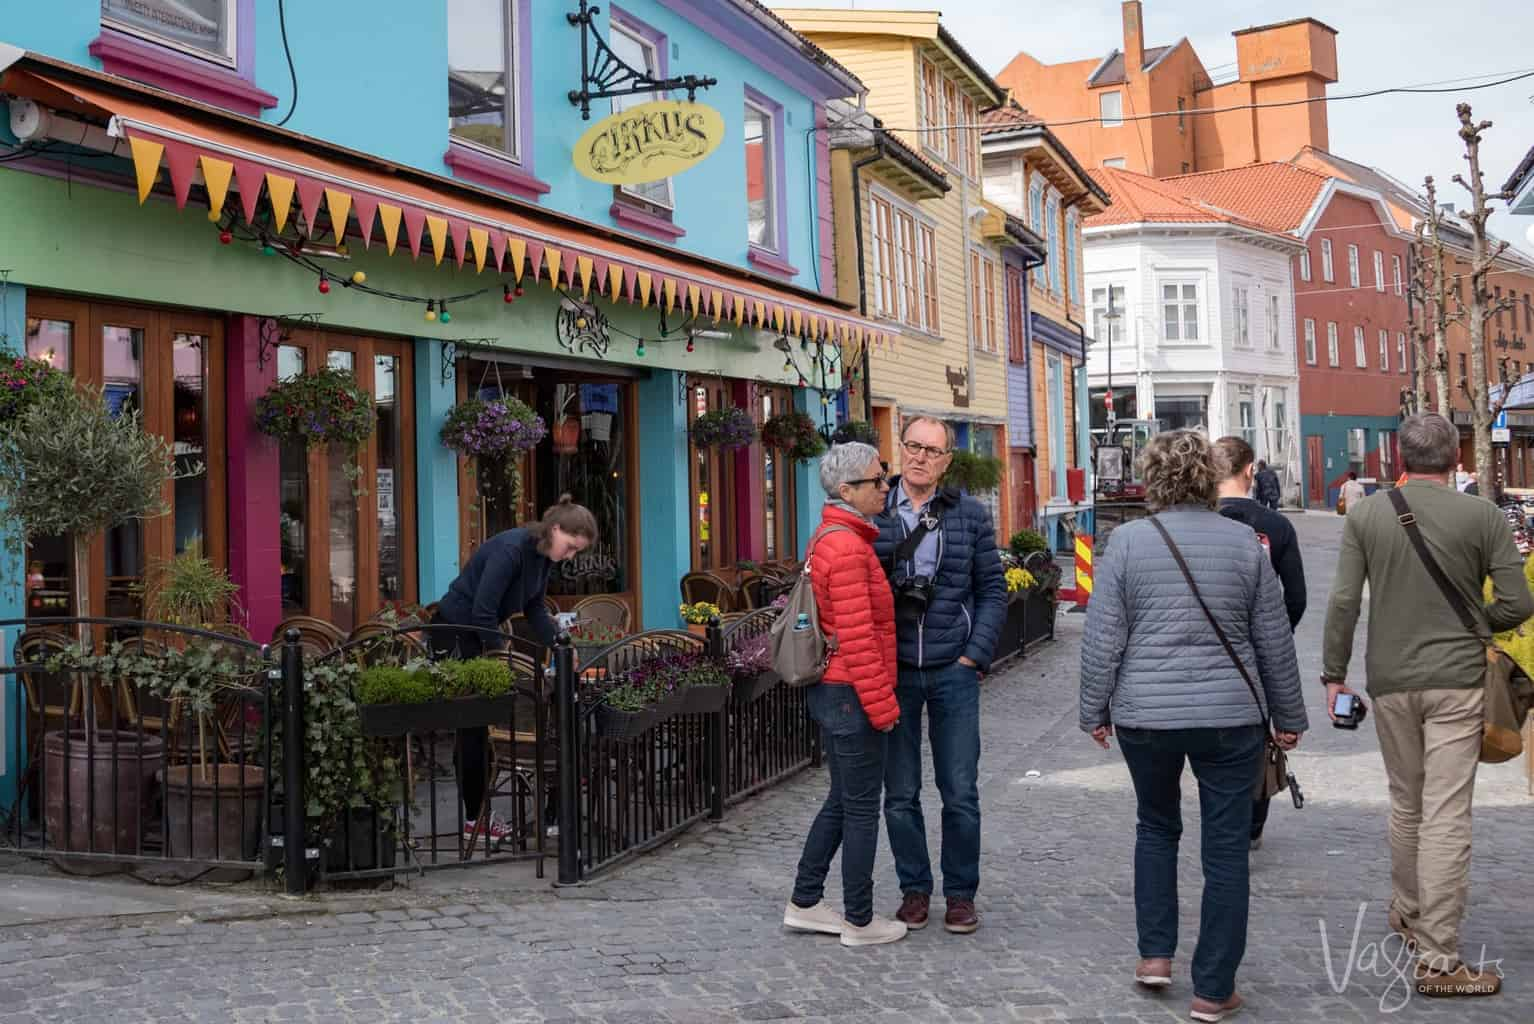 Viking river cruise packing list and cruise packing tips. Smart casual dress is best for day wear on a cruise. Just make sure your clothing and footwear are comfortable like these people on a cruise excursion in Norway.